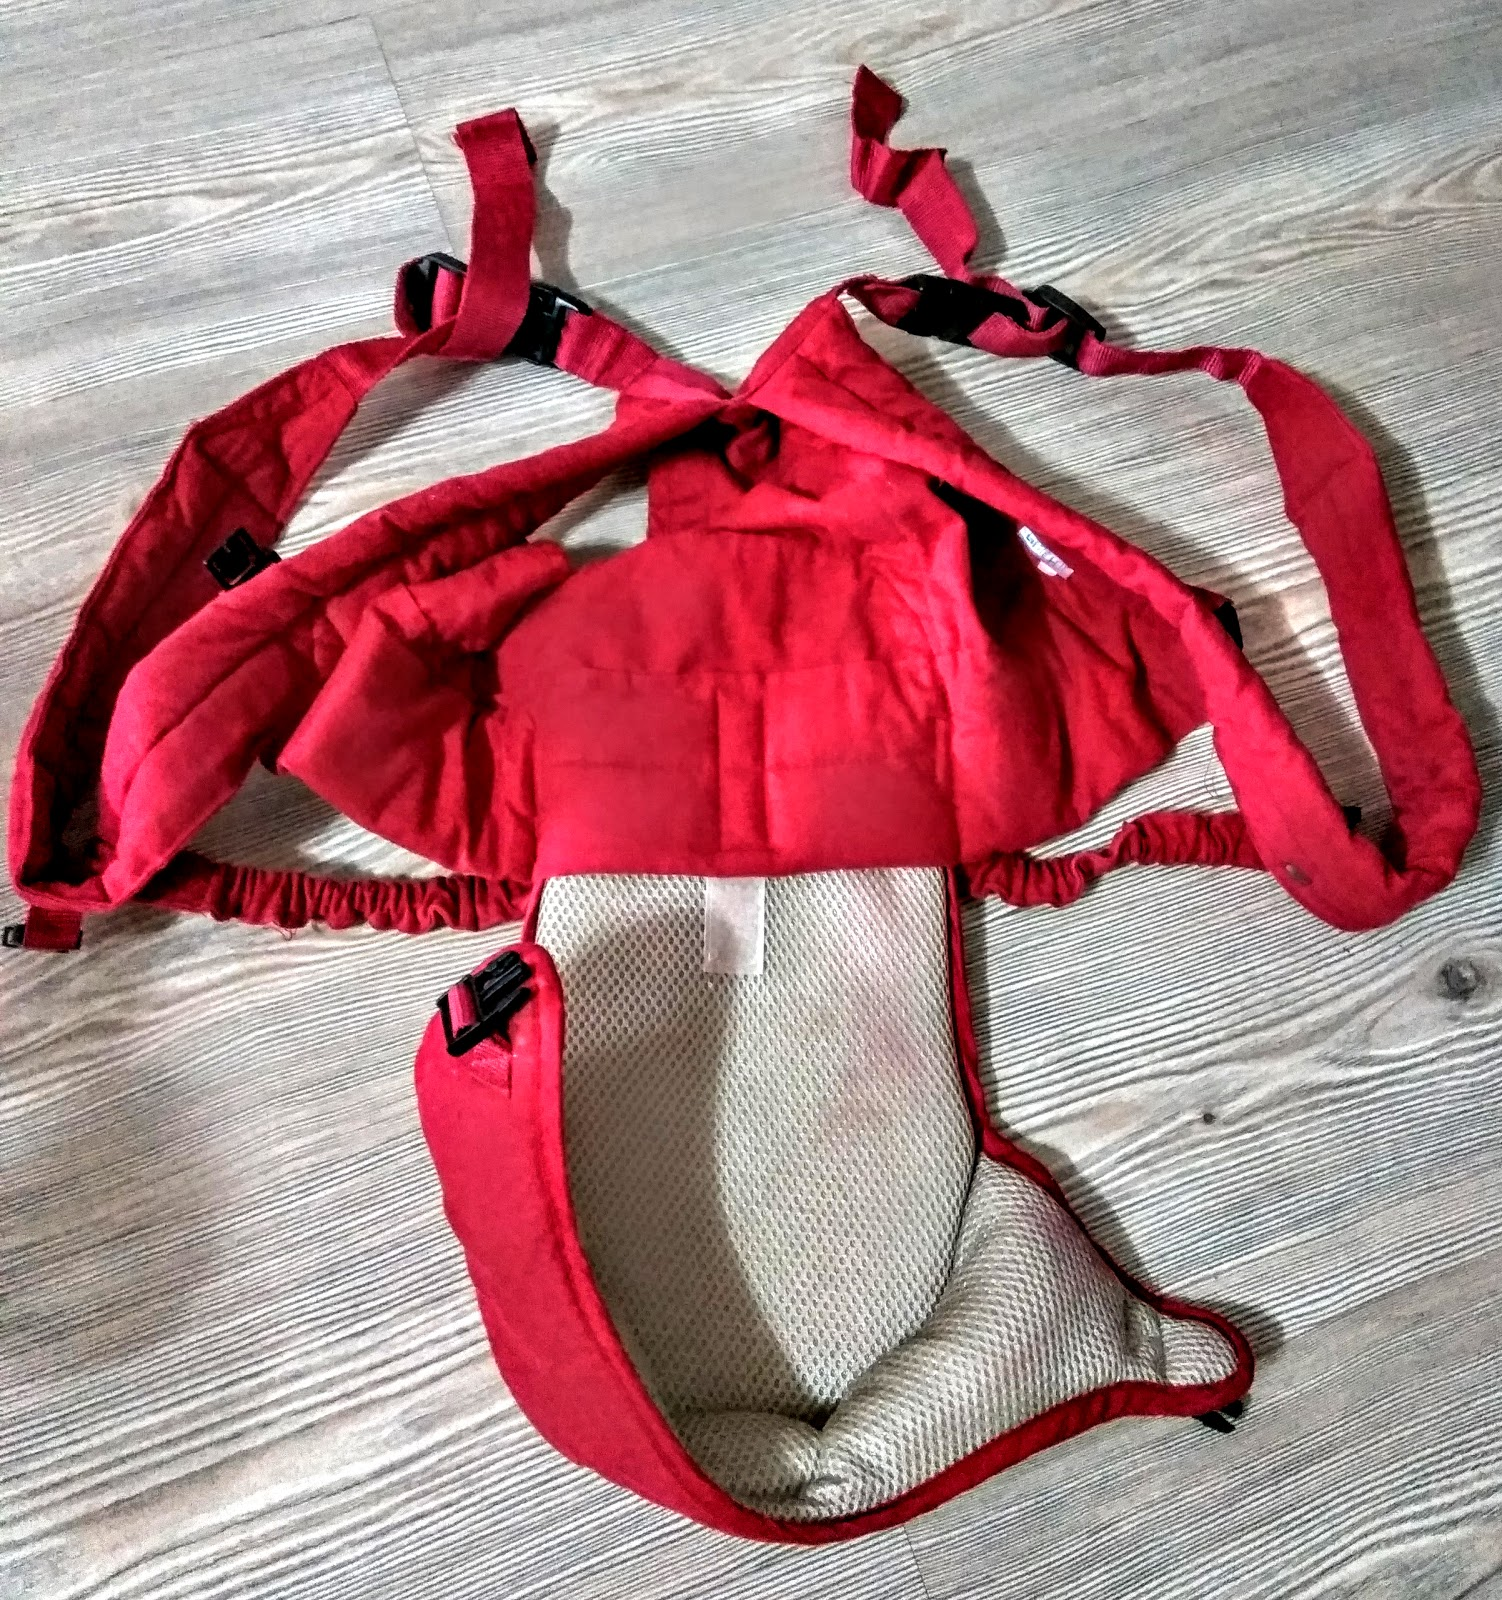 Let The Clingy Baby Clings Baby Carrier Review Unsponsored